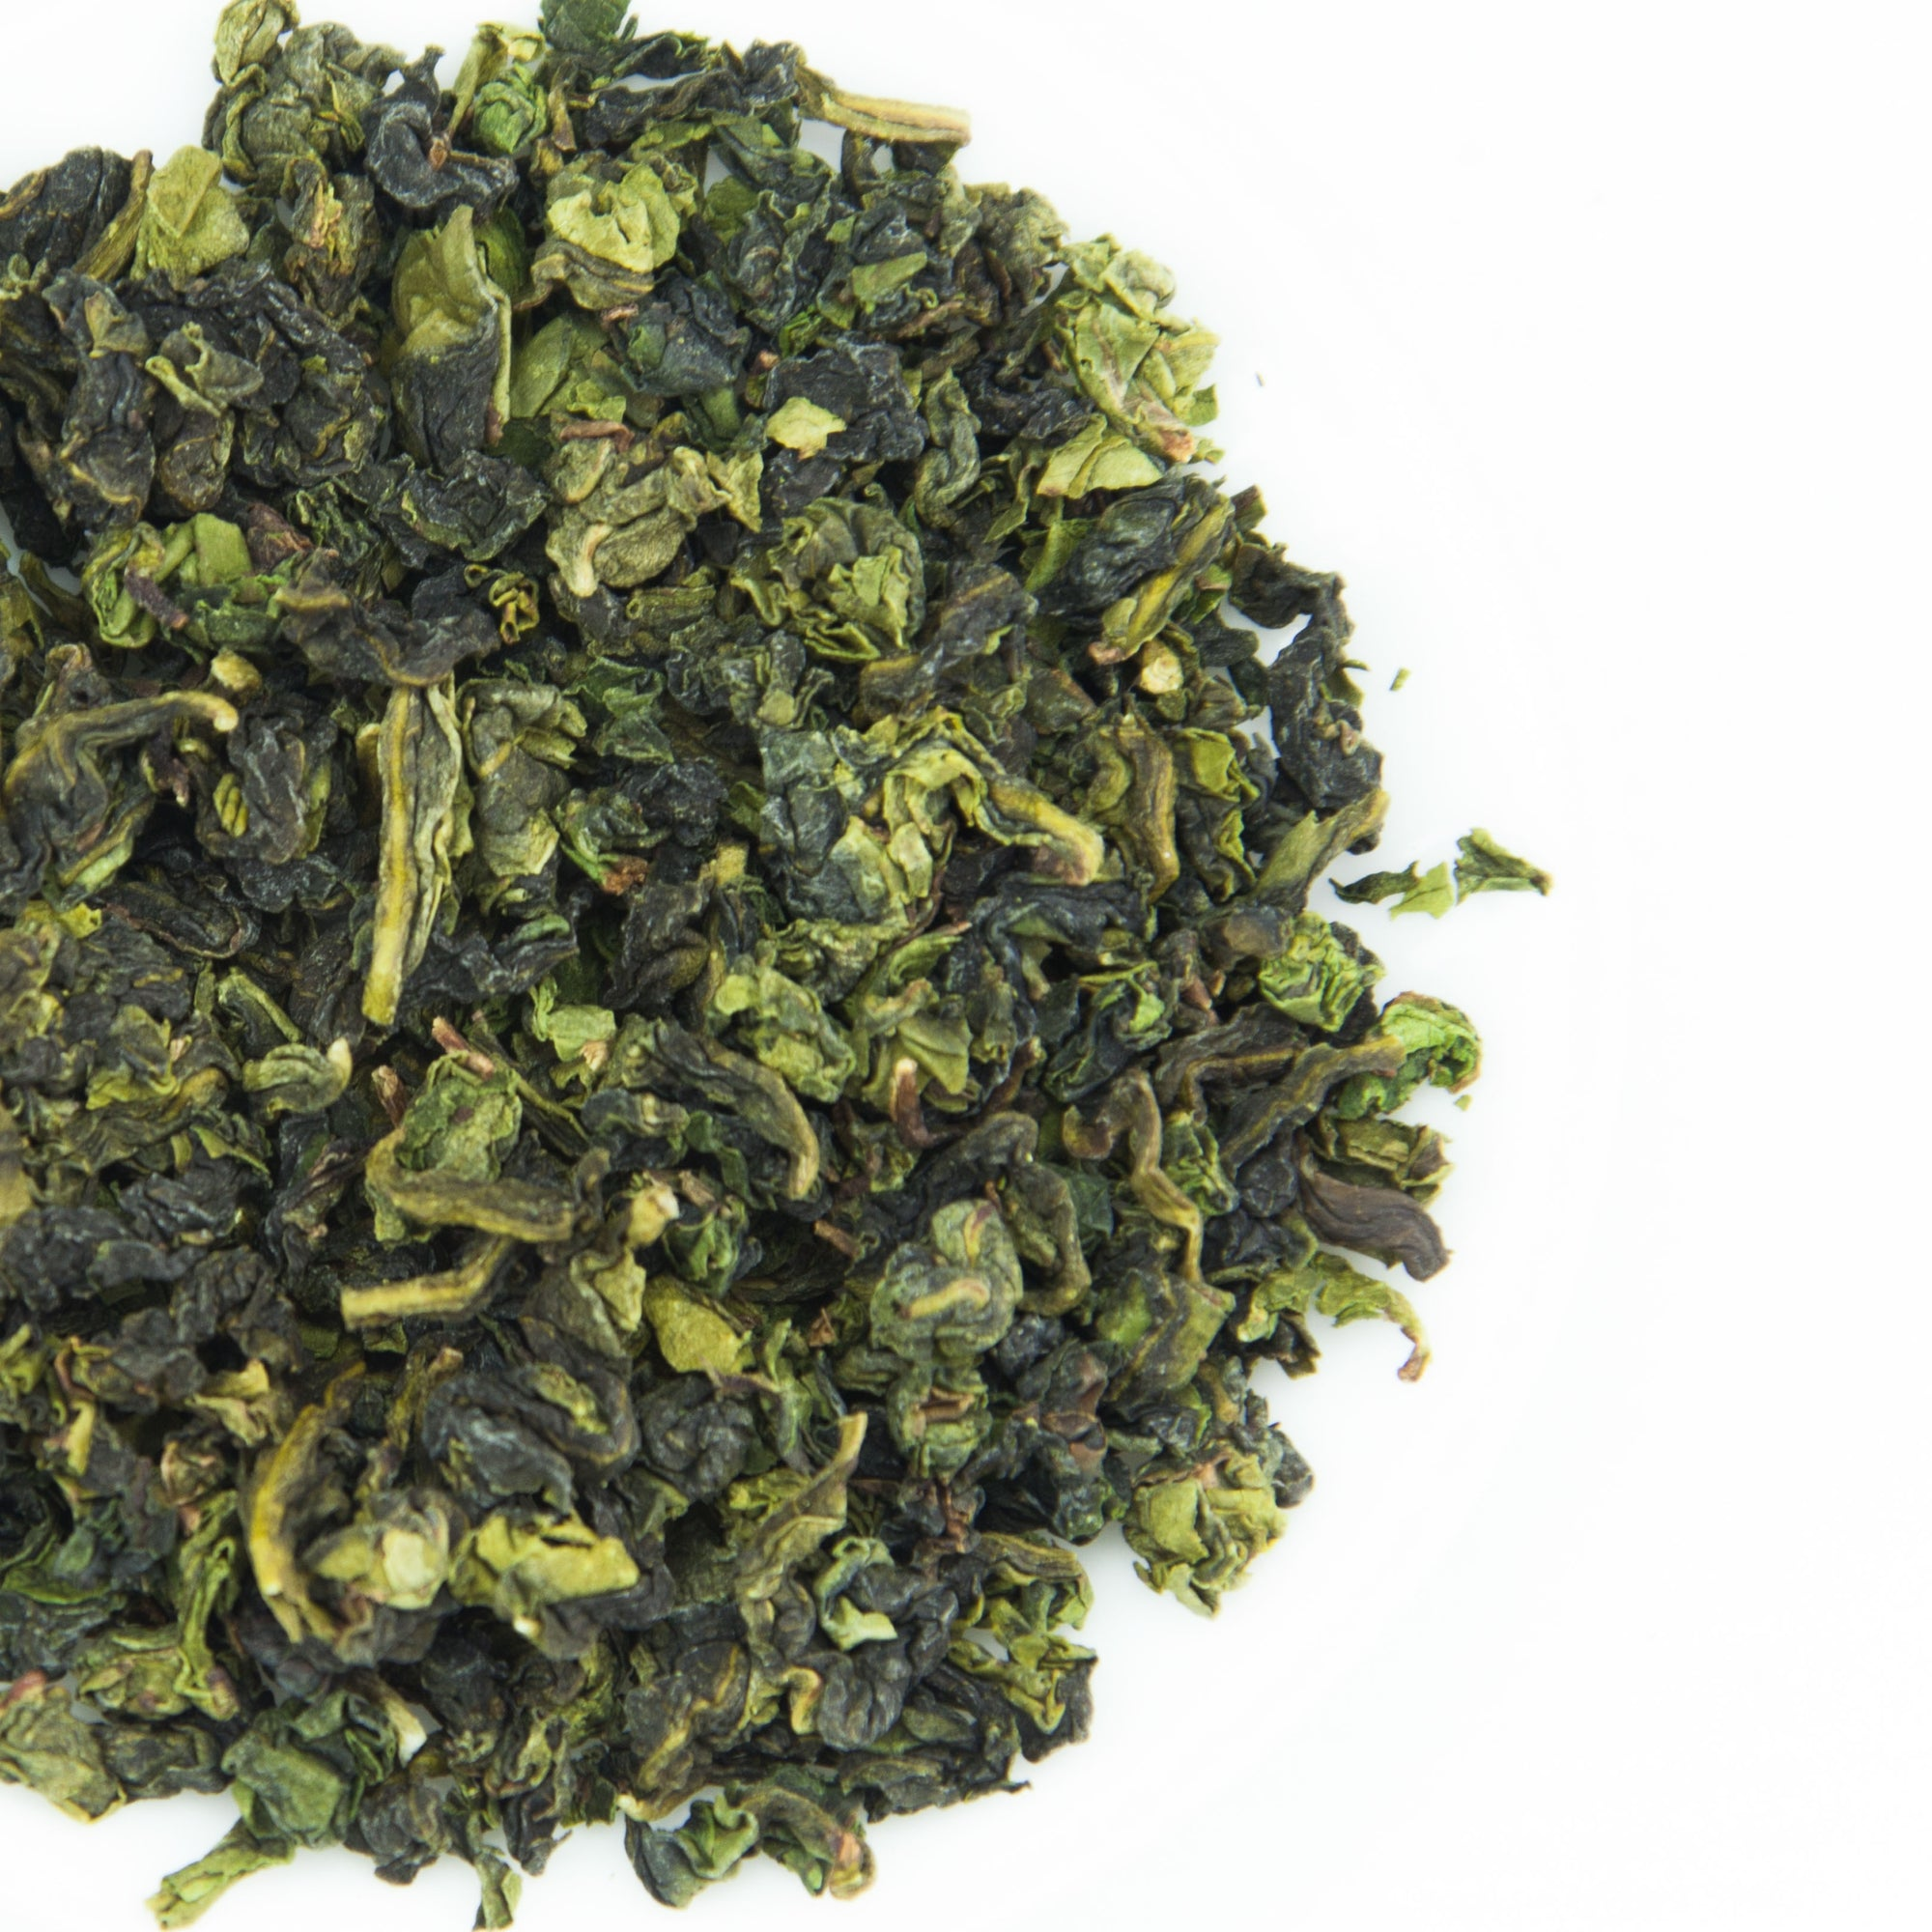 Tie Guan Yin (Iron Goddess of Mercy)